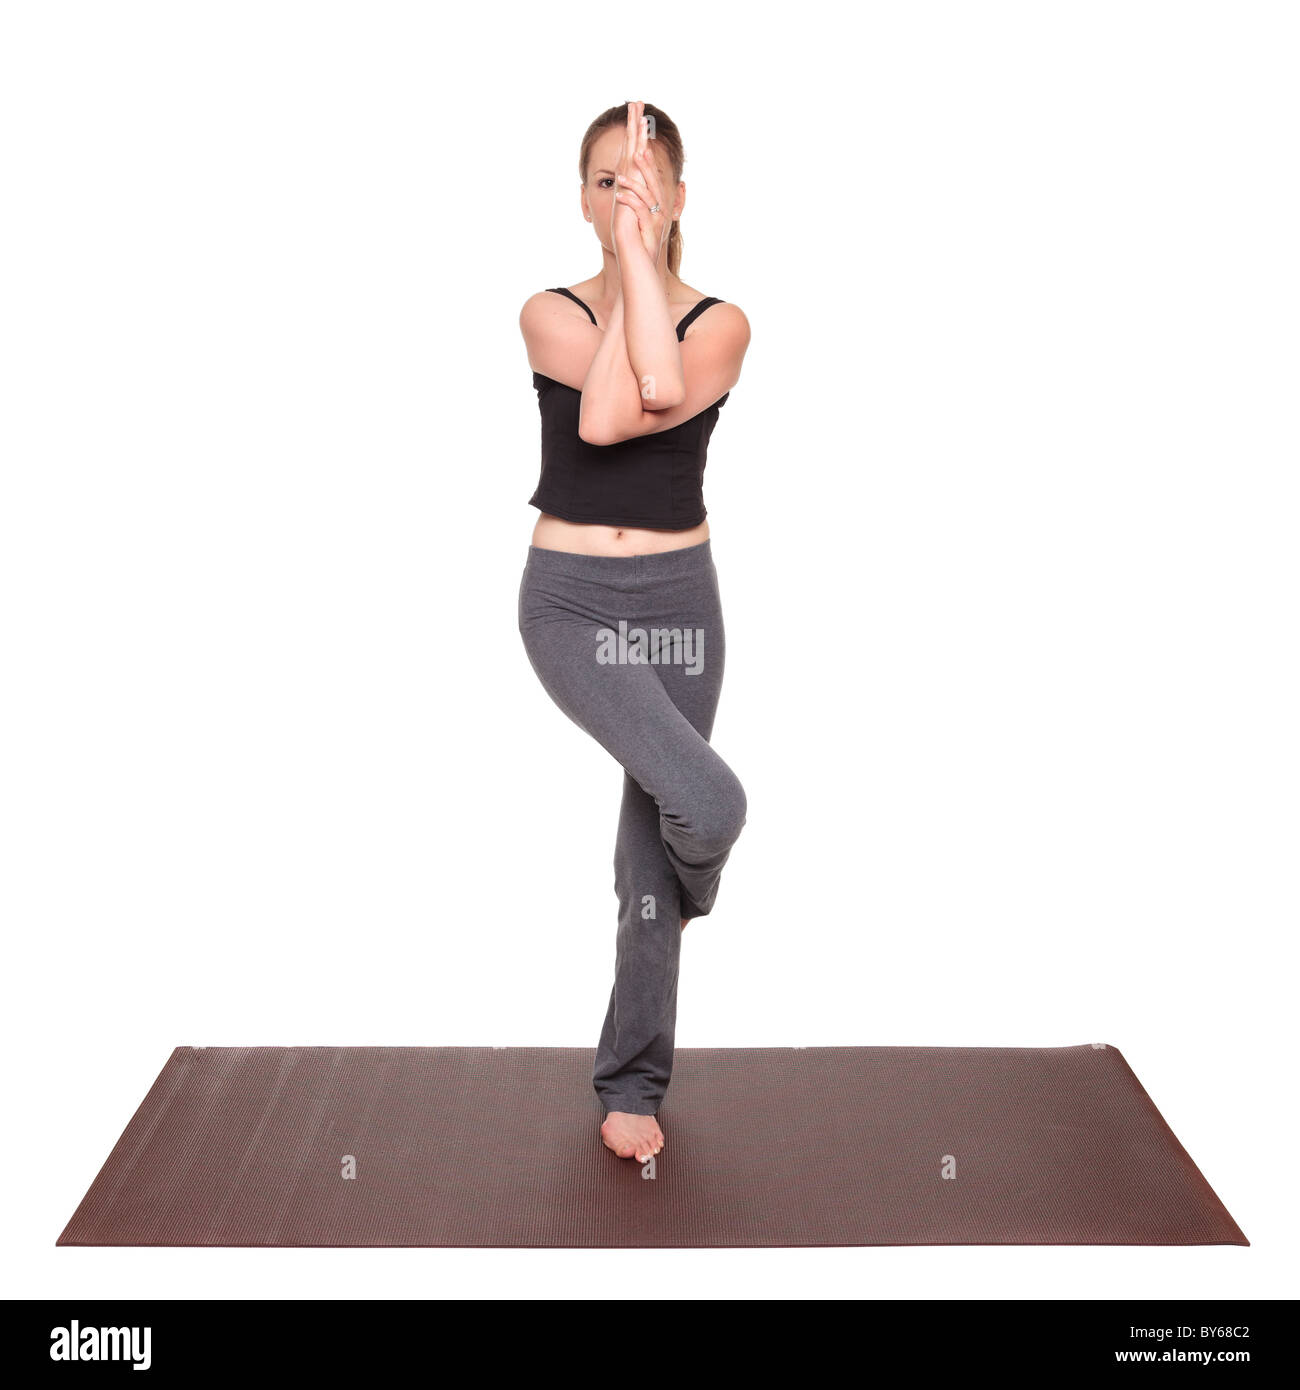 Isolated studio shot of a fit Caucasian woman holding the garudasana Eagle Pose yoga position on an exercise mat. - Stock Image